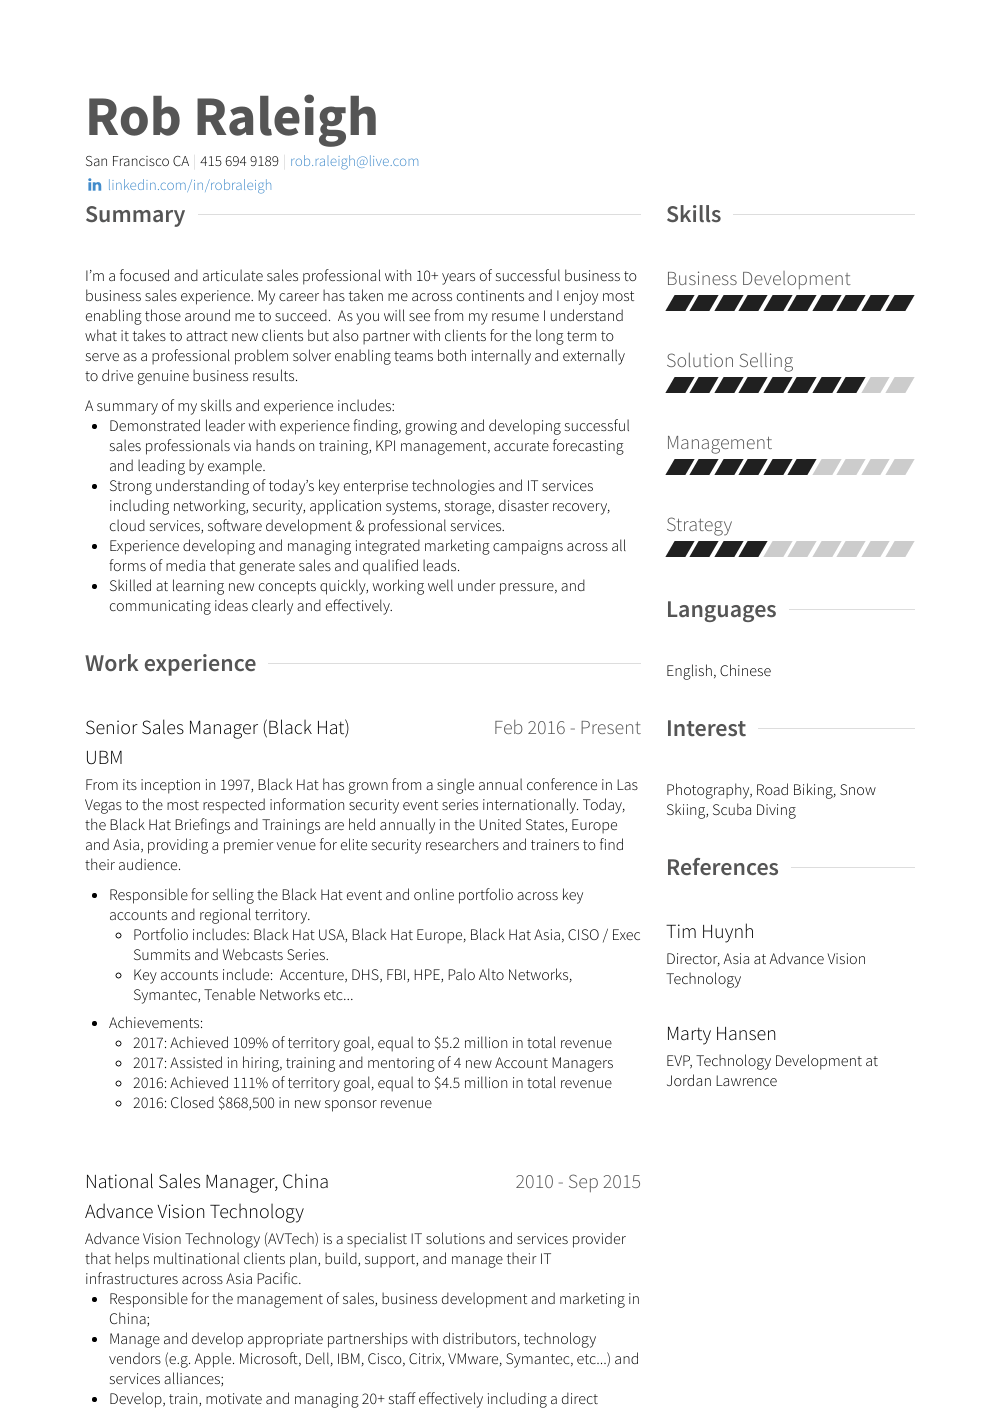 National Sales Manager Resume Samples Amp Templates Visualcv